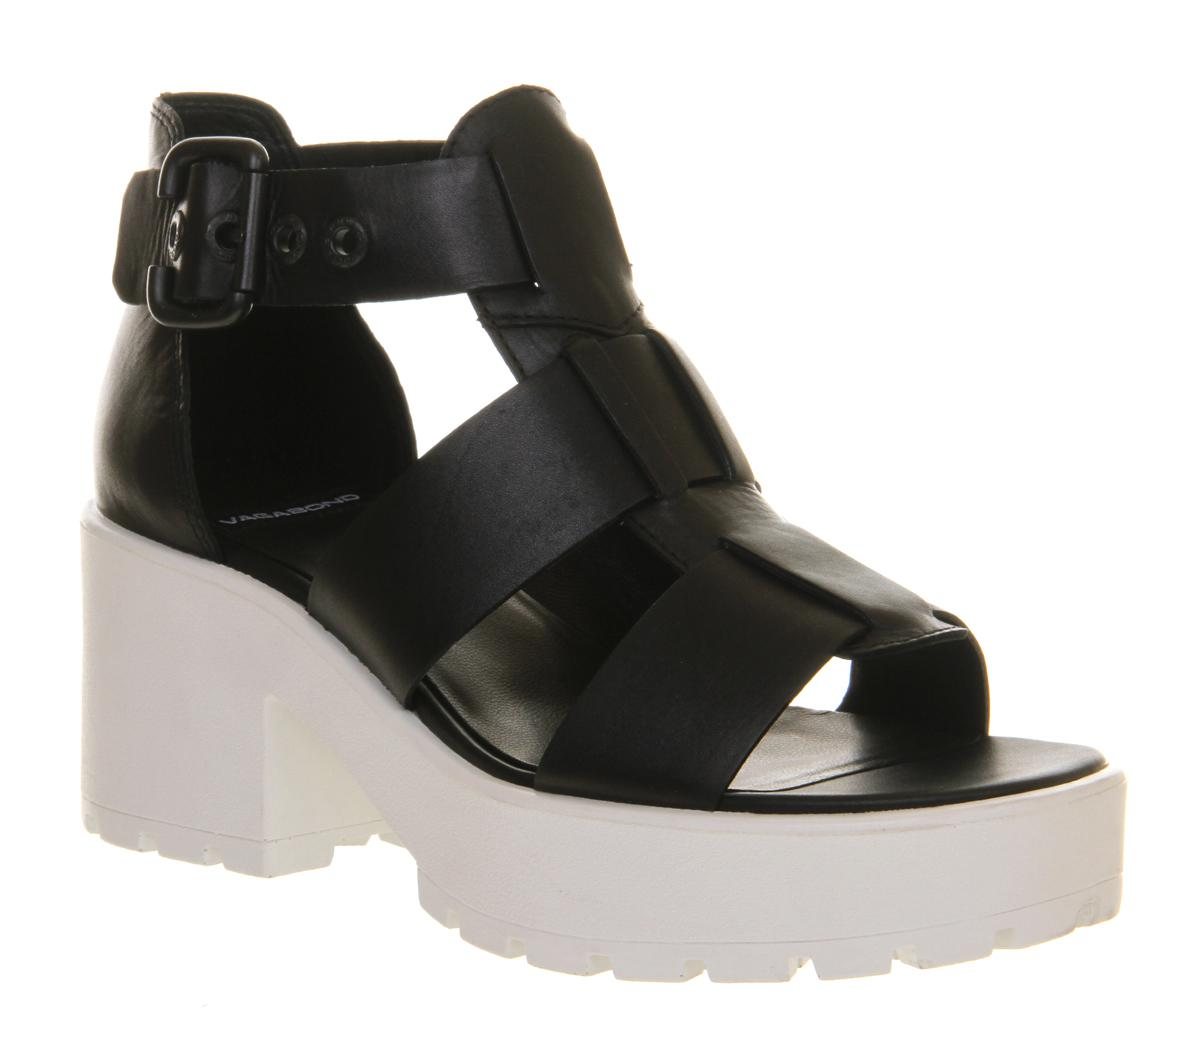 Lyst - Vagabond Dioon Gladiator in Black